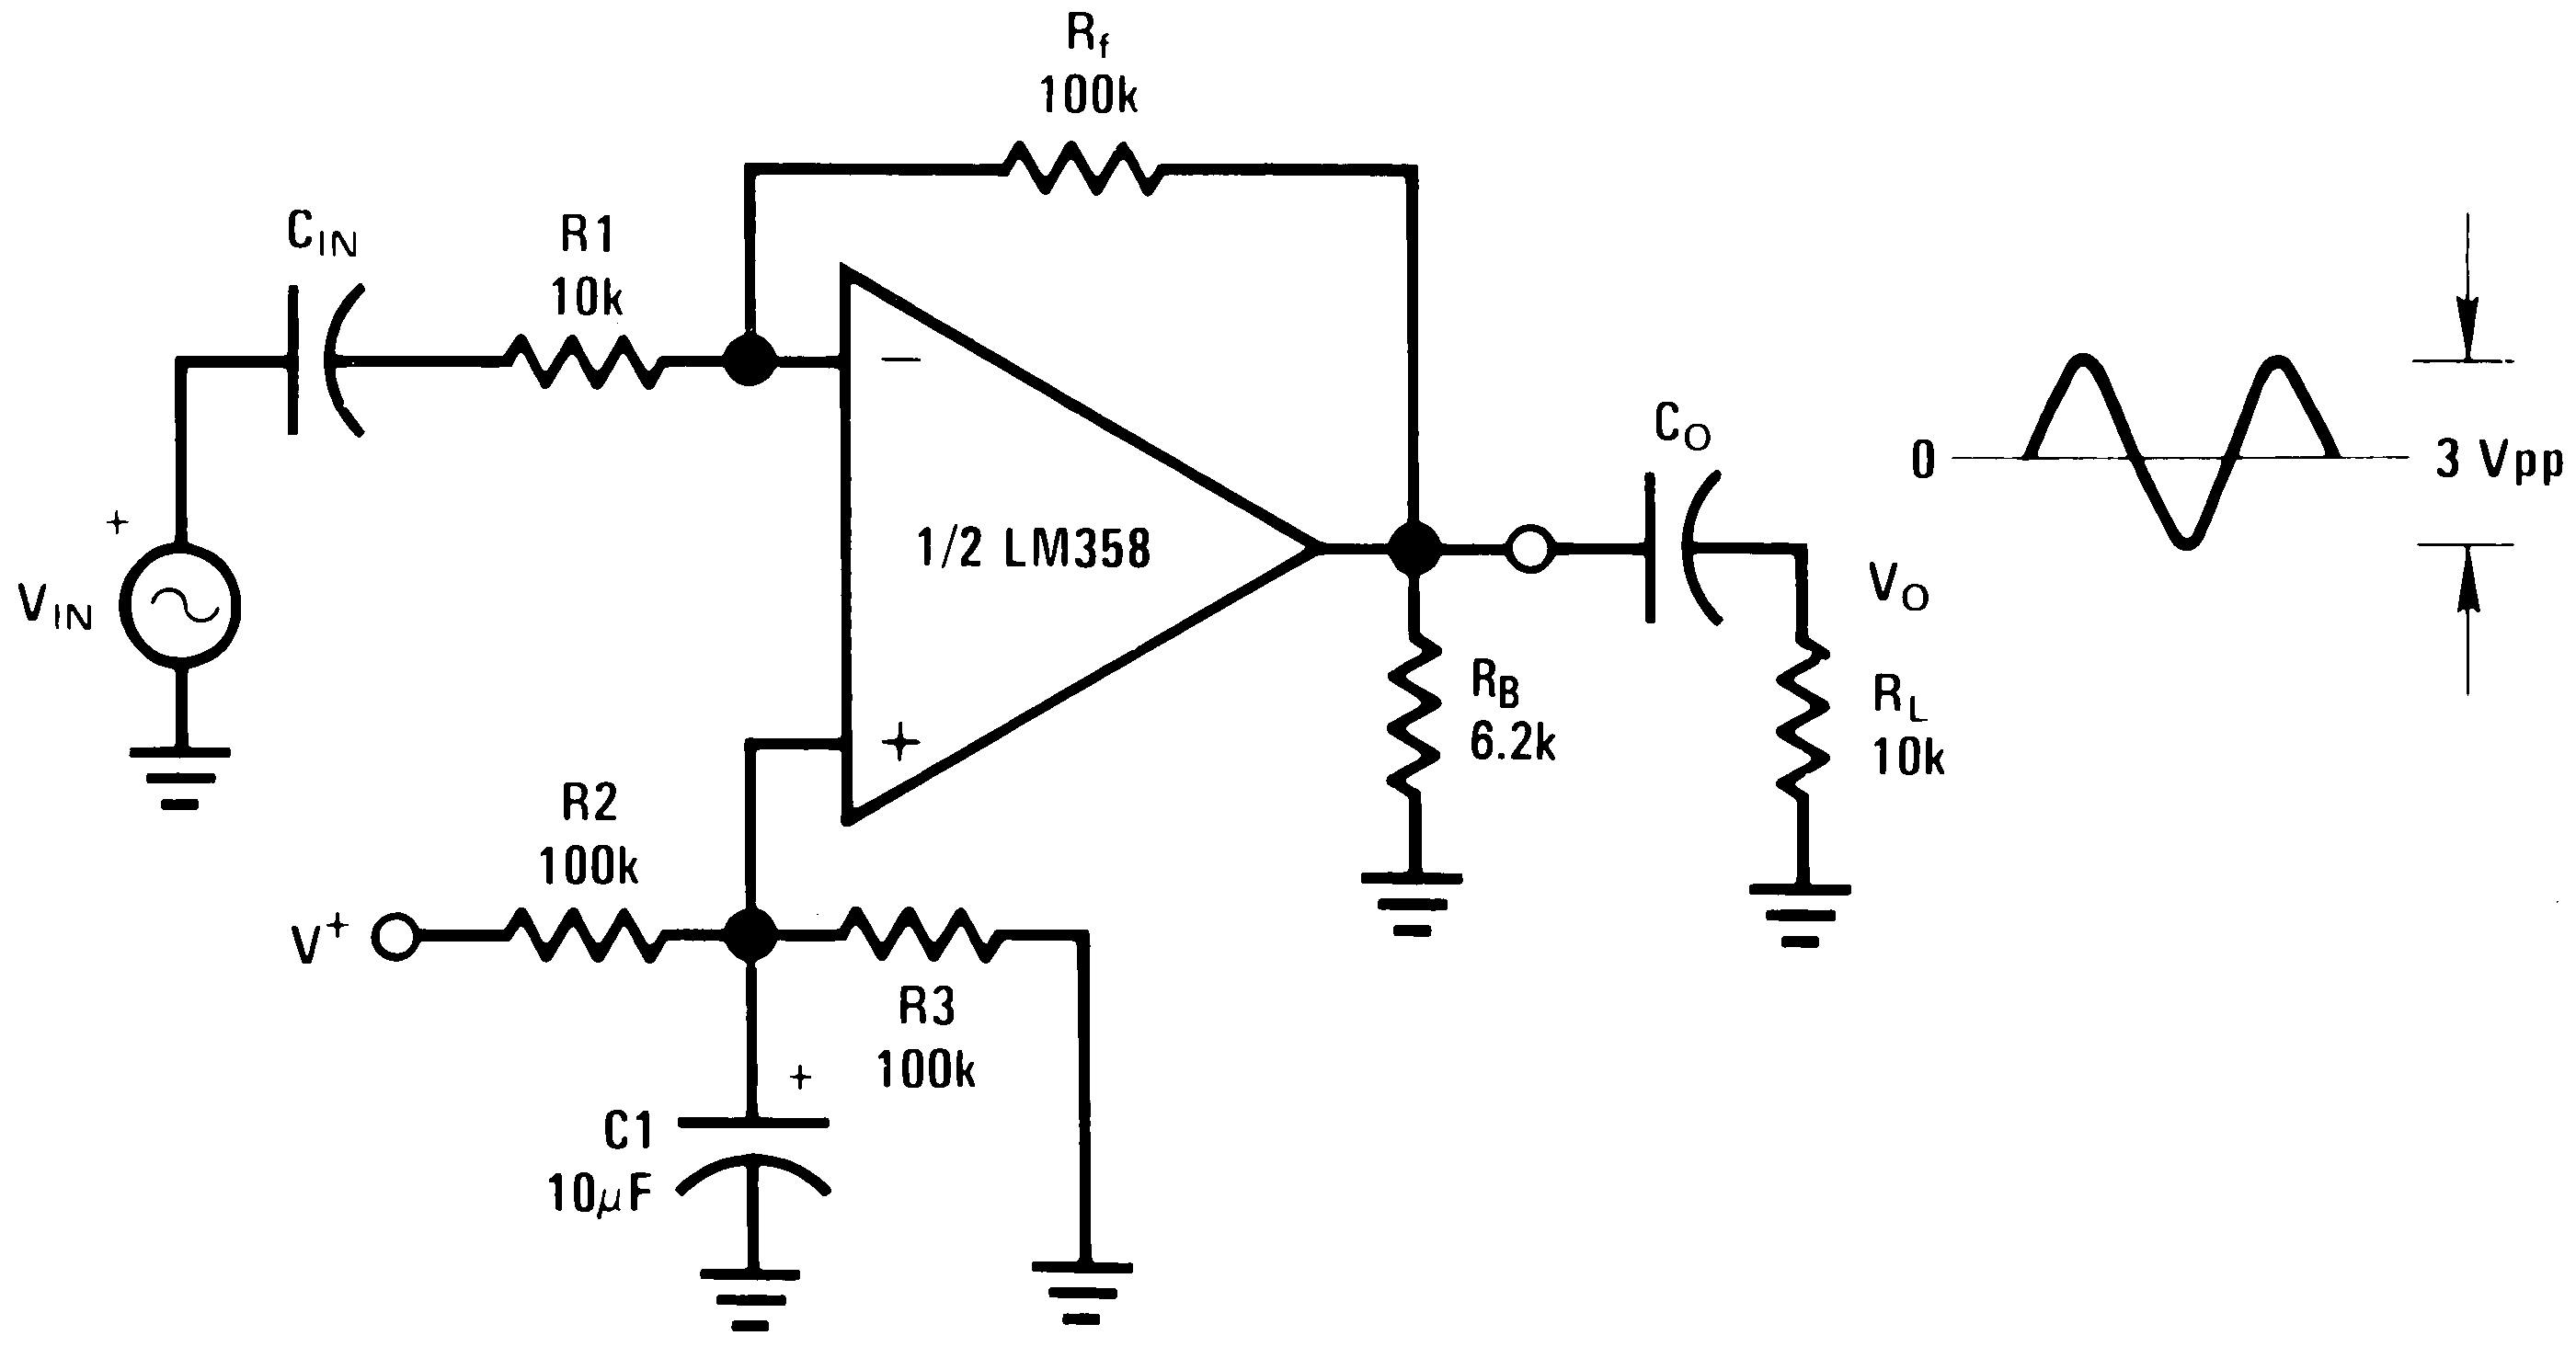 circuit diagram of non inverting amplifier fios phone wiring can anyone please explain cin diypedals